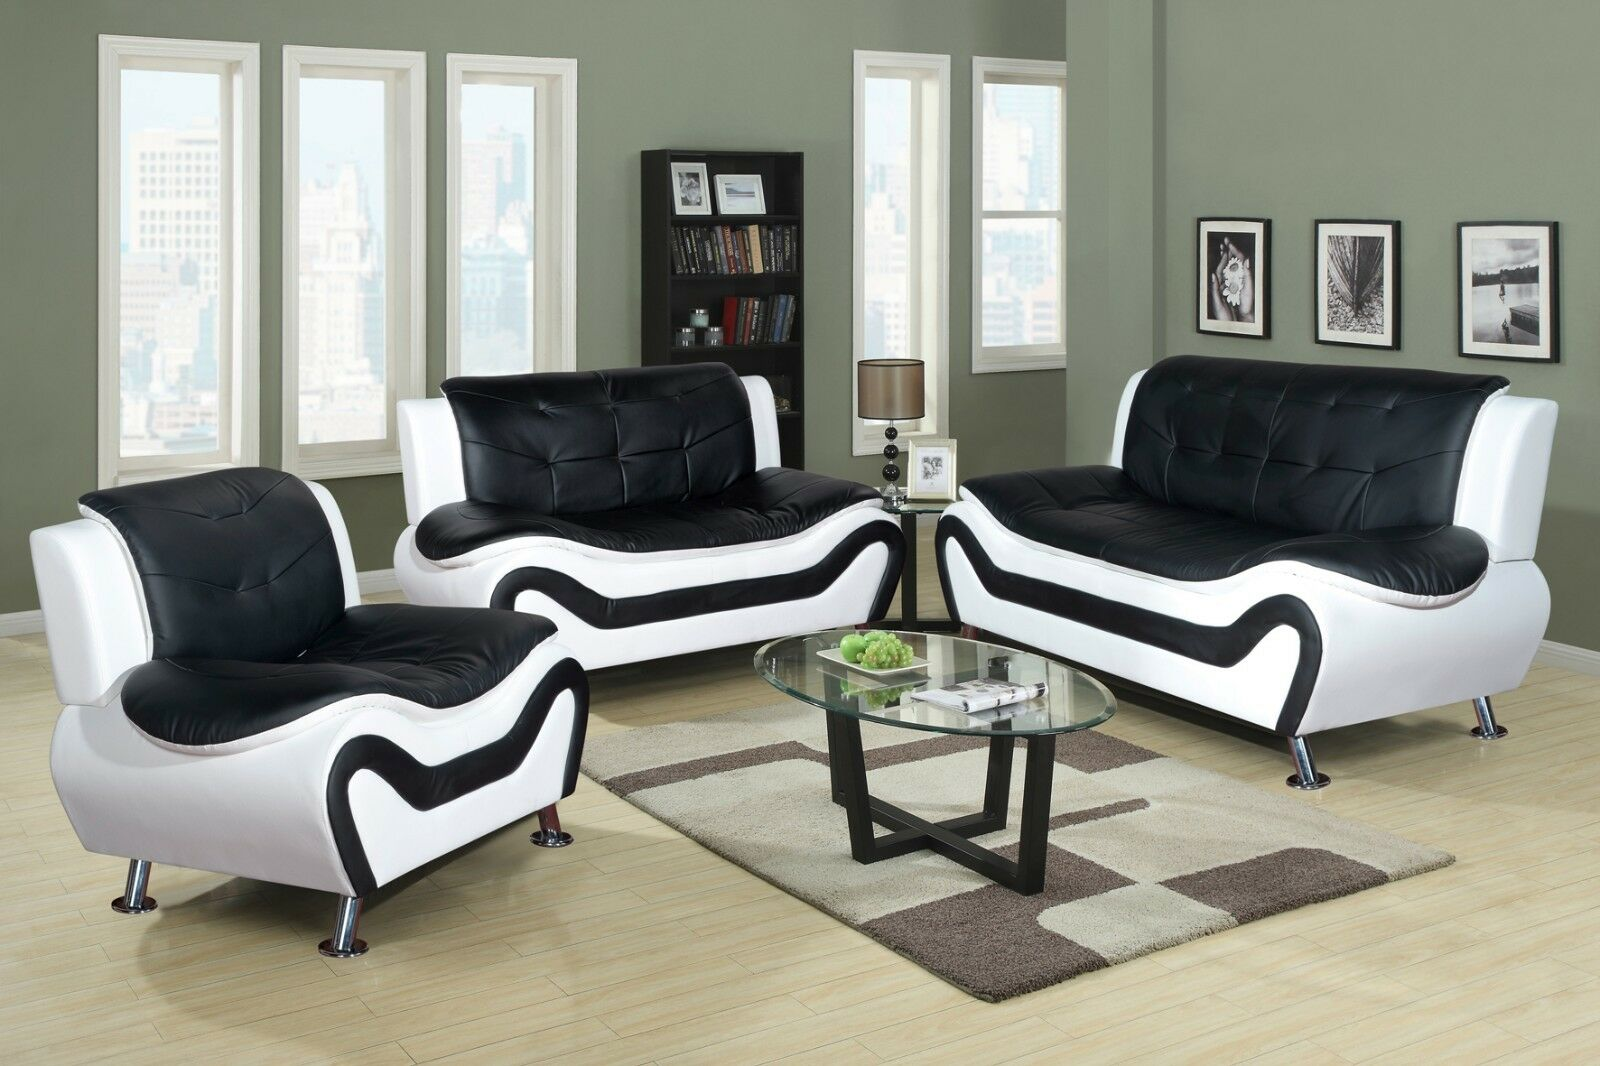 sofa faux fine furniture leftfacing leather hayneedle url beverly sectional andor s getimage black com